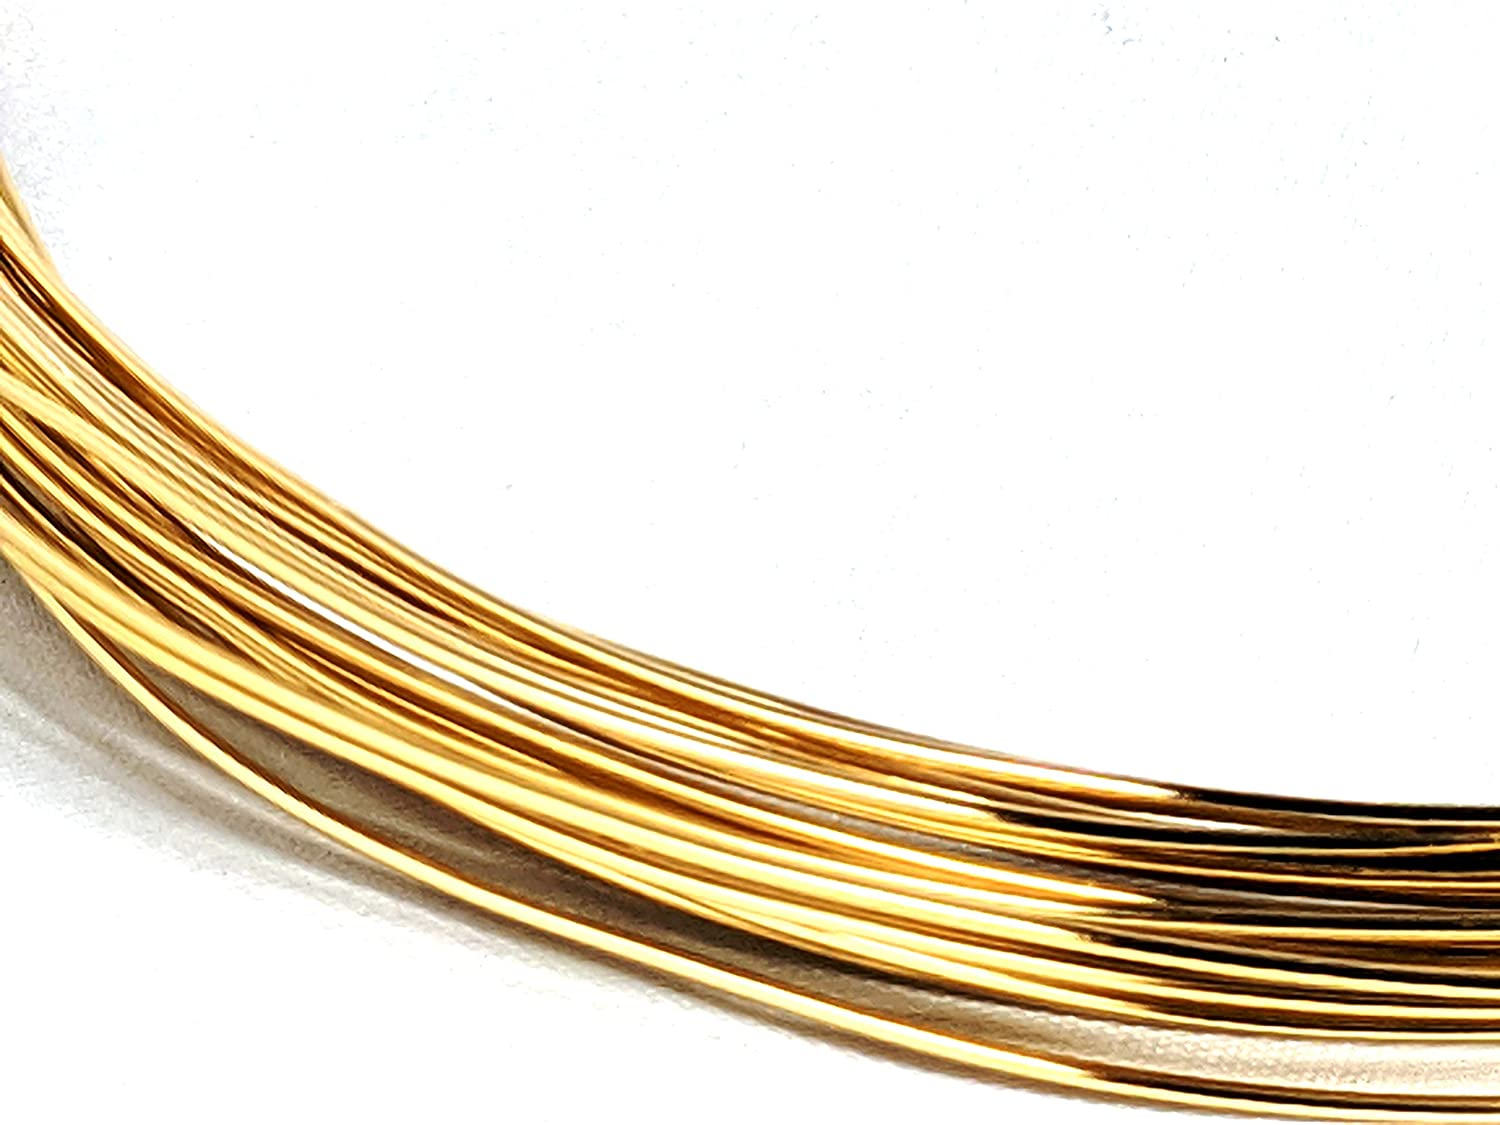 Anodised 10m Length from Bekis Beads for Arts Crafts Florists Jewellery Making Aluminium Wire 1mm 14K Gold Plated